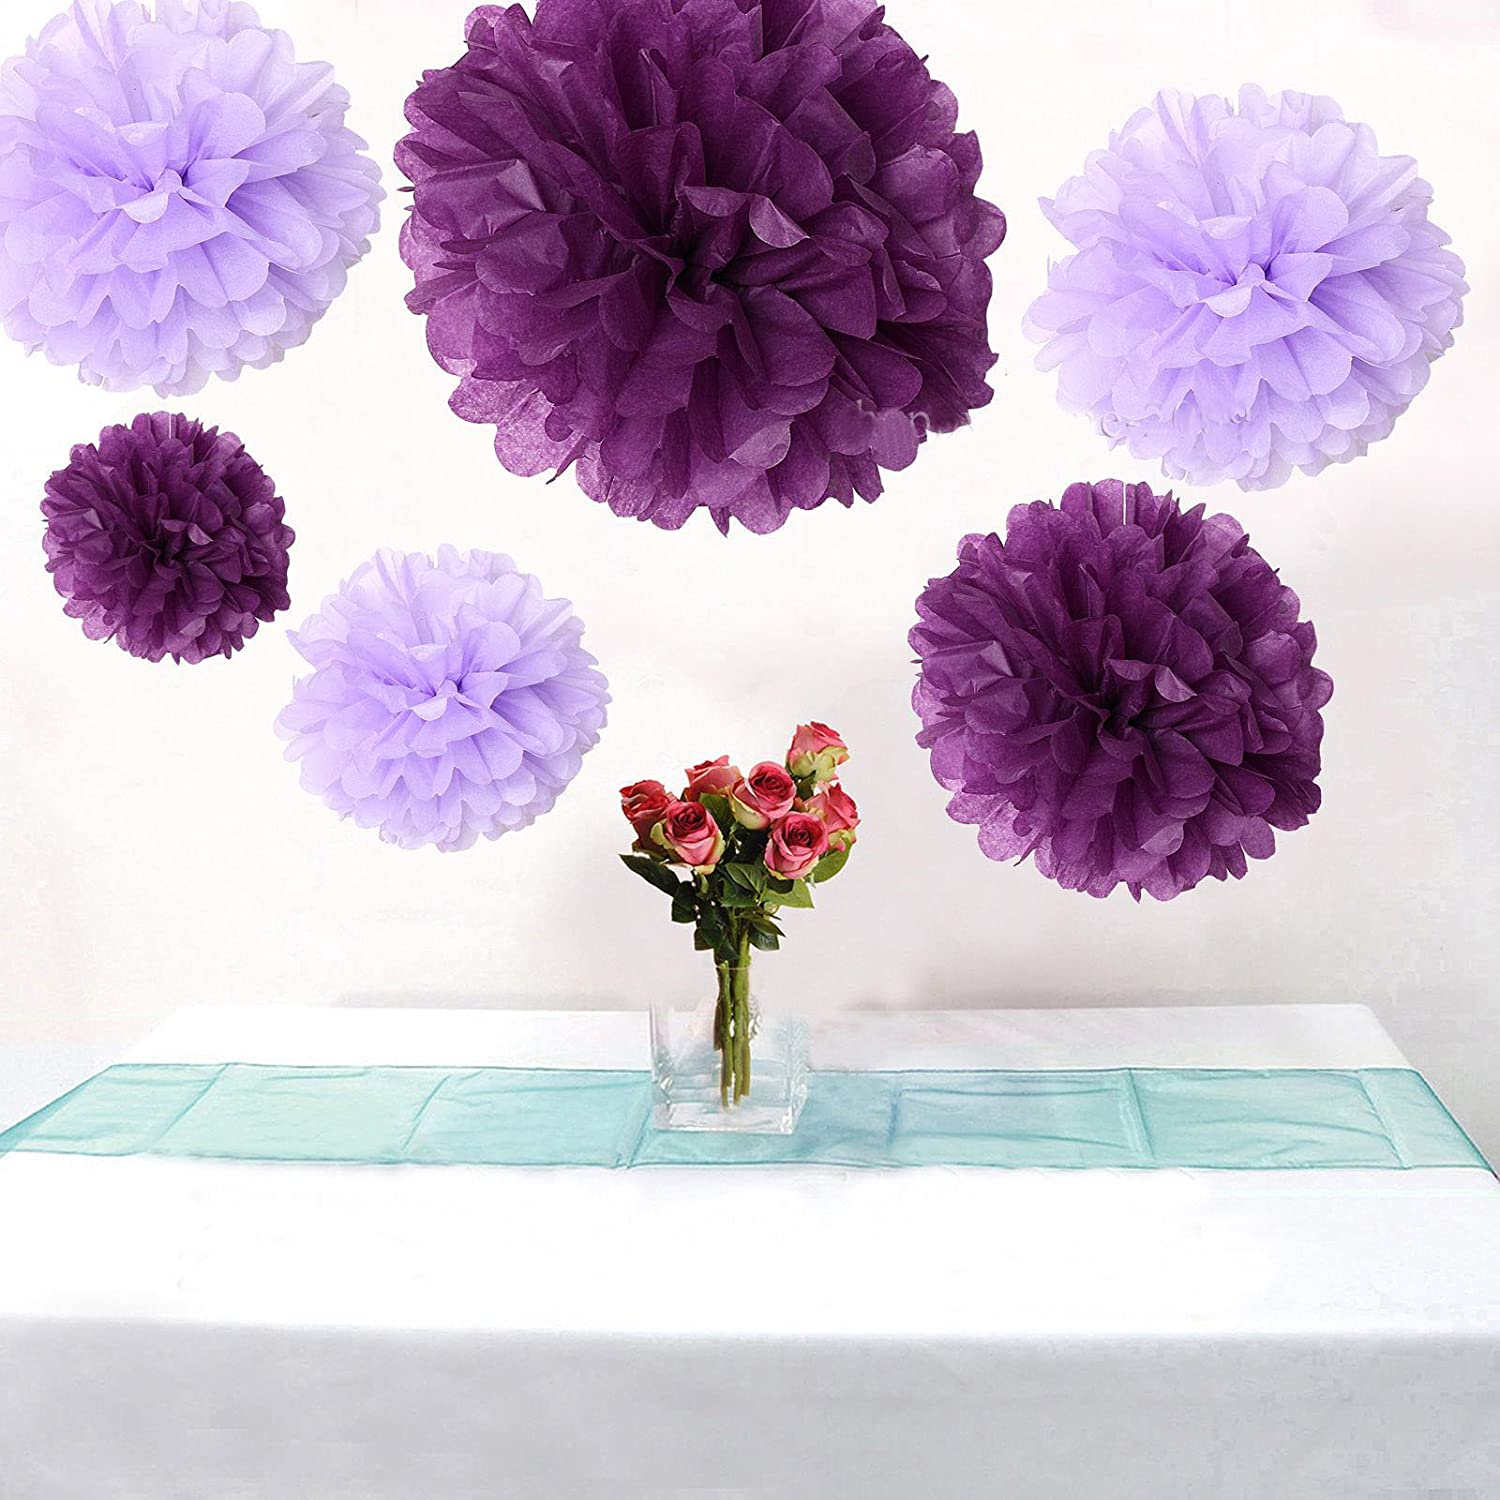 12PCS Mixed Sizes Purple And Lavender Tissue Paper Flower Pom Poms Pompoms Wedding Birthday Party Decoration